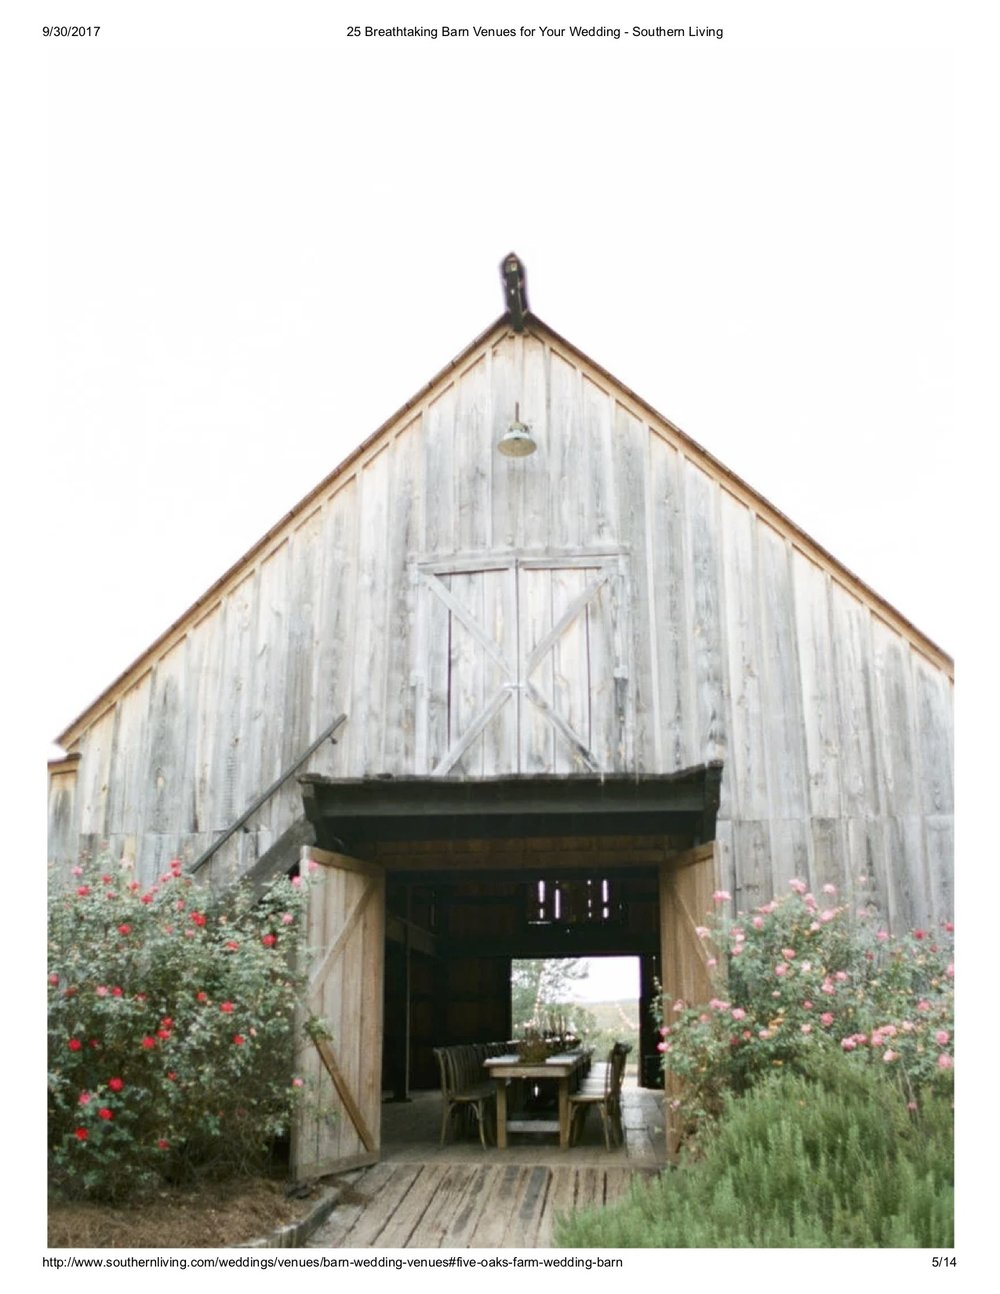 5.25 Breathtaking Barn Venues for Your Wedding - Southern Living copy 3.jpg